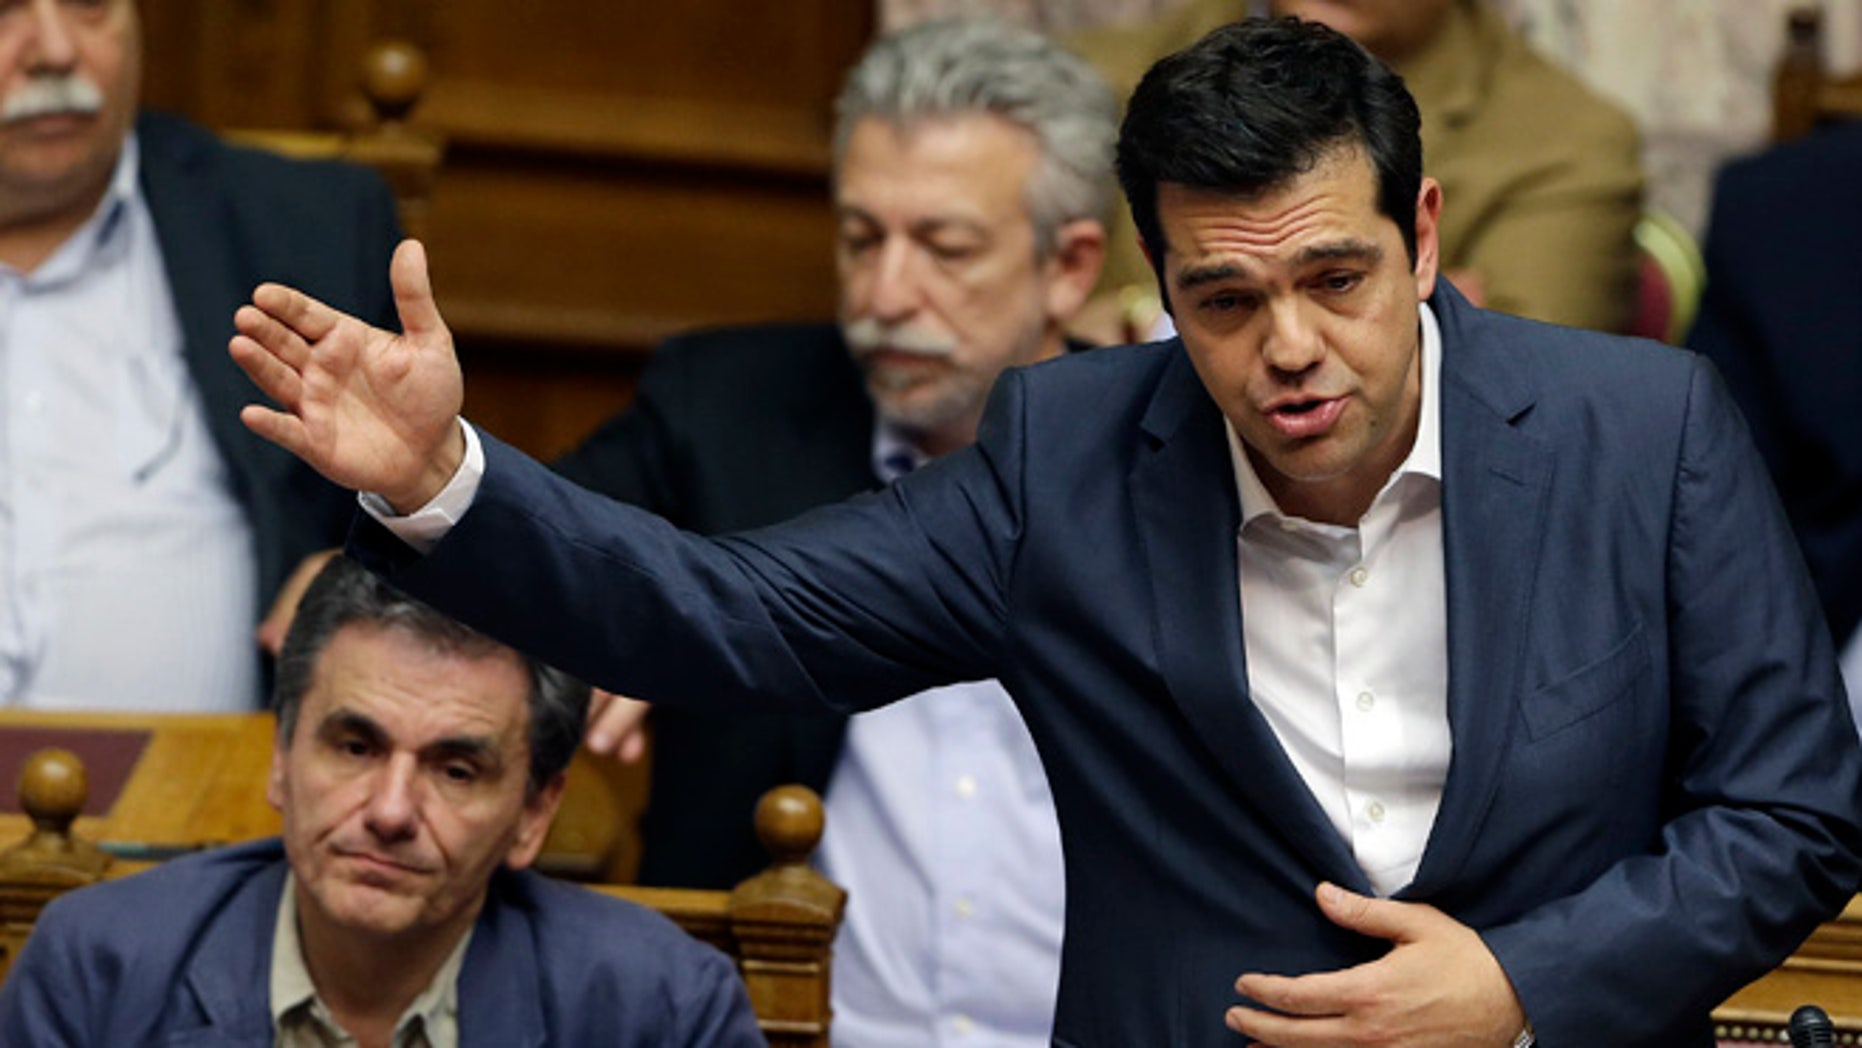 July 16, 2015: Greece's Prime Minister Alexis Tsipras delivers a speech during a parliament meeting in Athens. (AP)